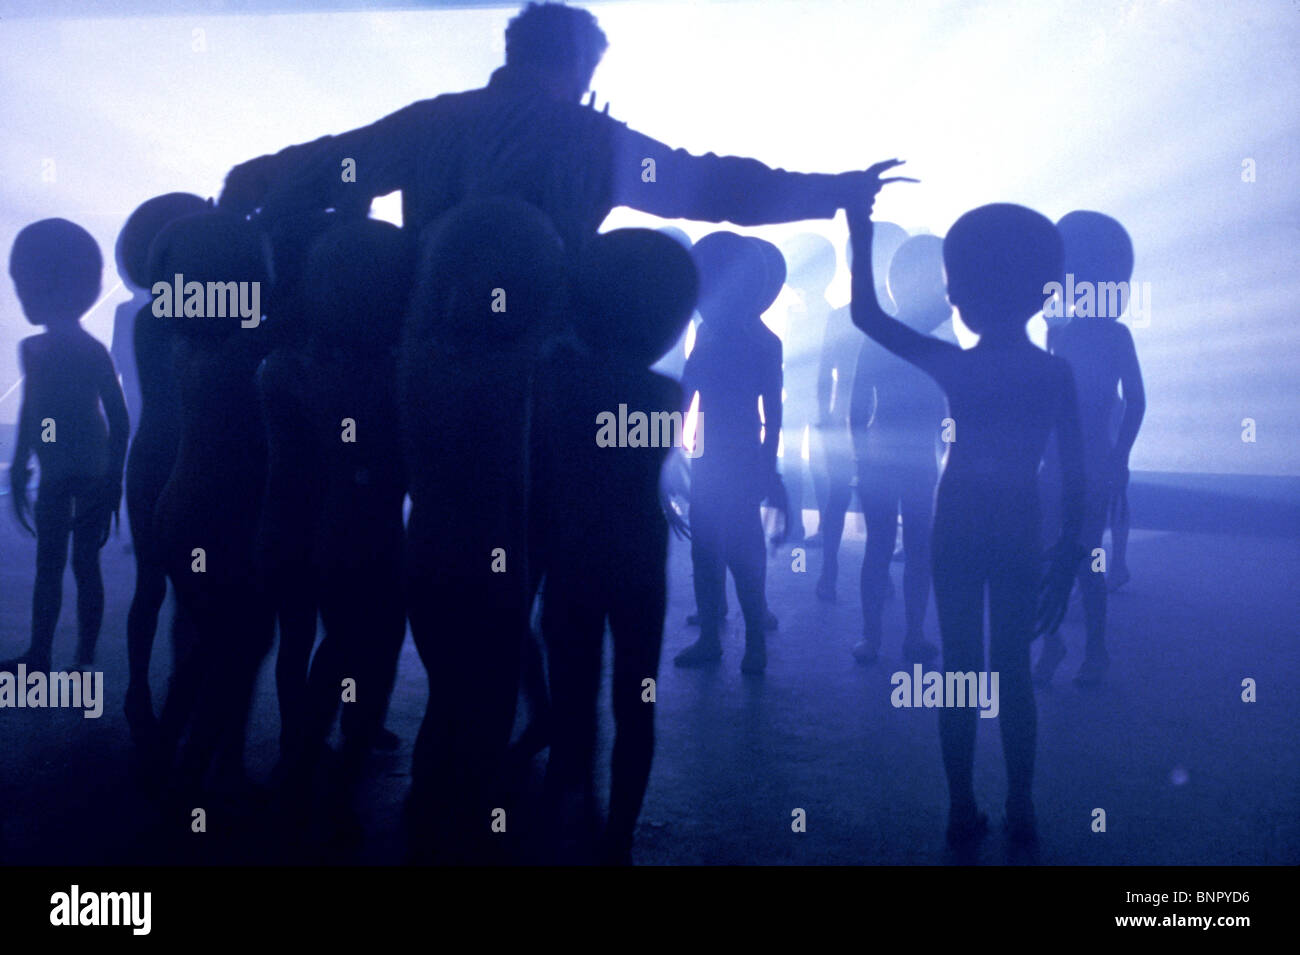 RICHARD DREYFUSS WITH ALIENS CLOSE ENCOUNTERS OF THE THIRD KIND (1977) - Stock Image